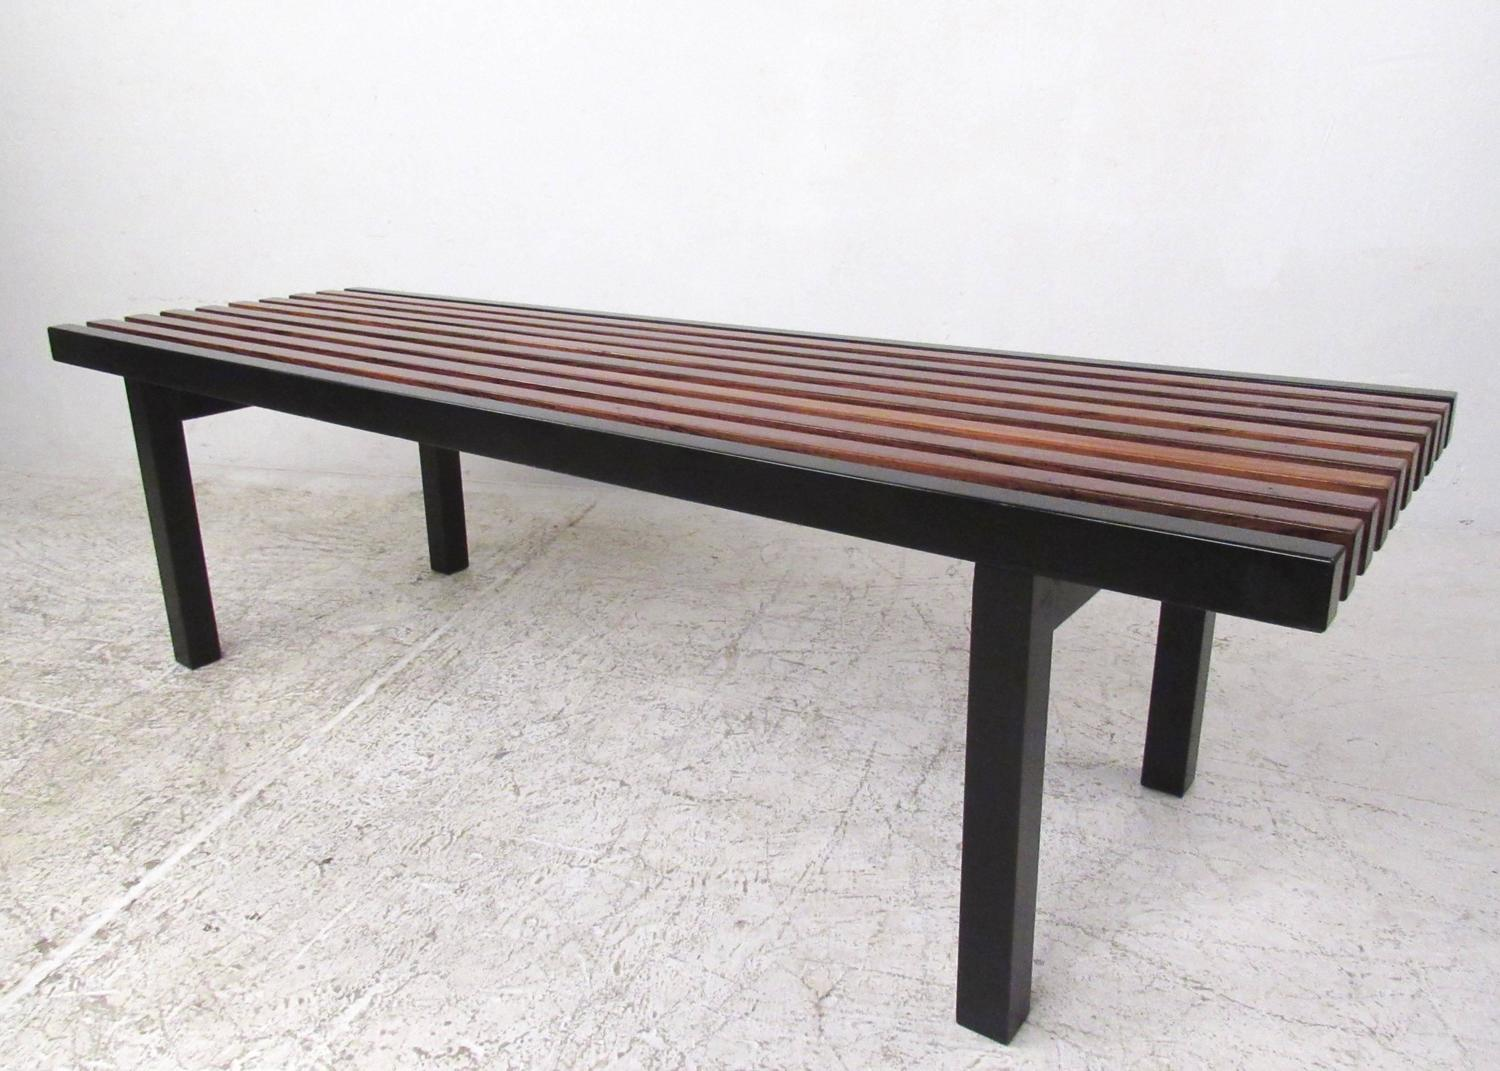 Unique Mid Century Modern Slat Bench Coffee Table For Sale At 1stdibs